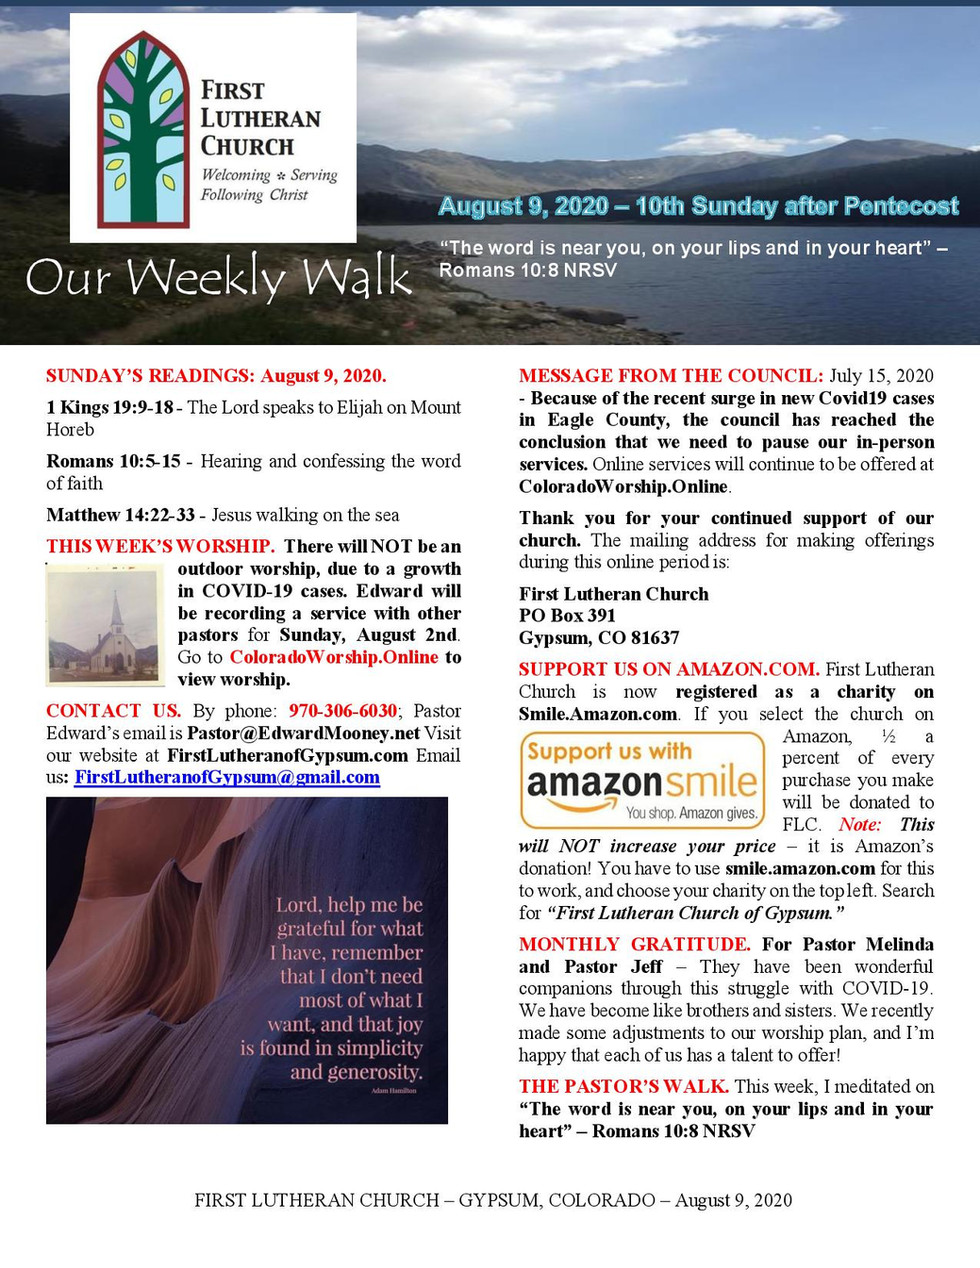 Newsletter, August 9, 2020, page 1